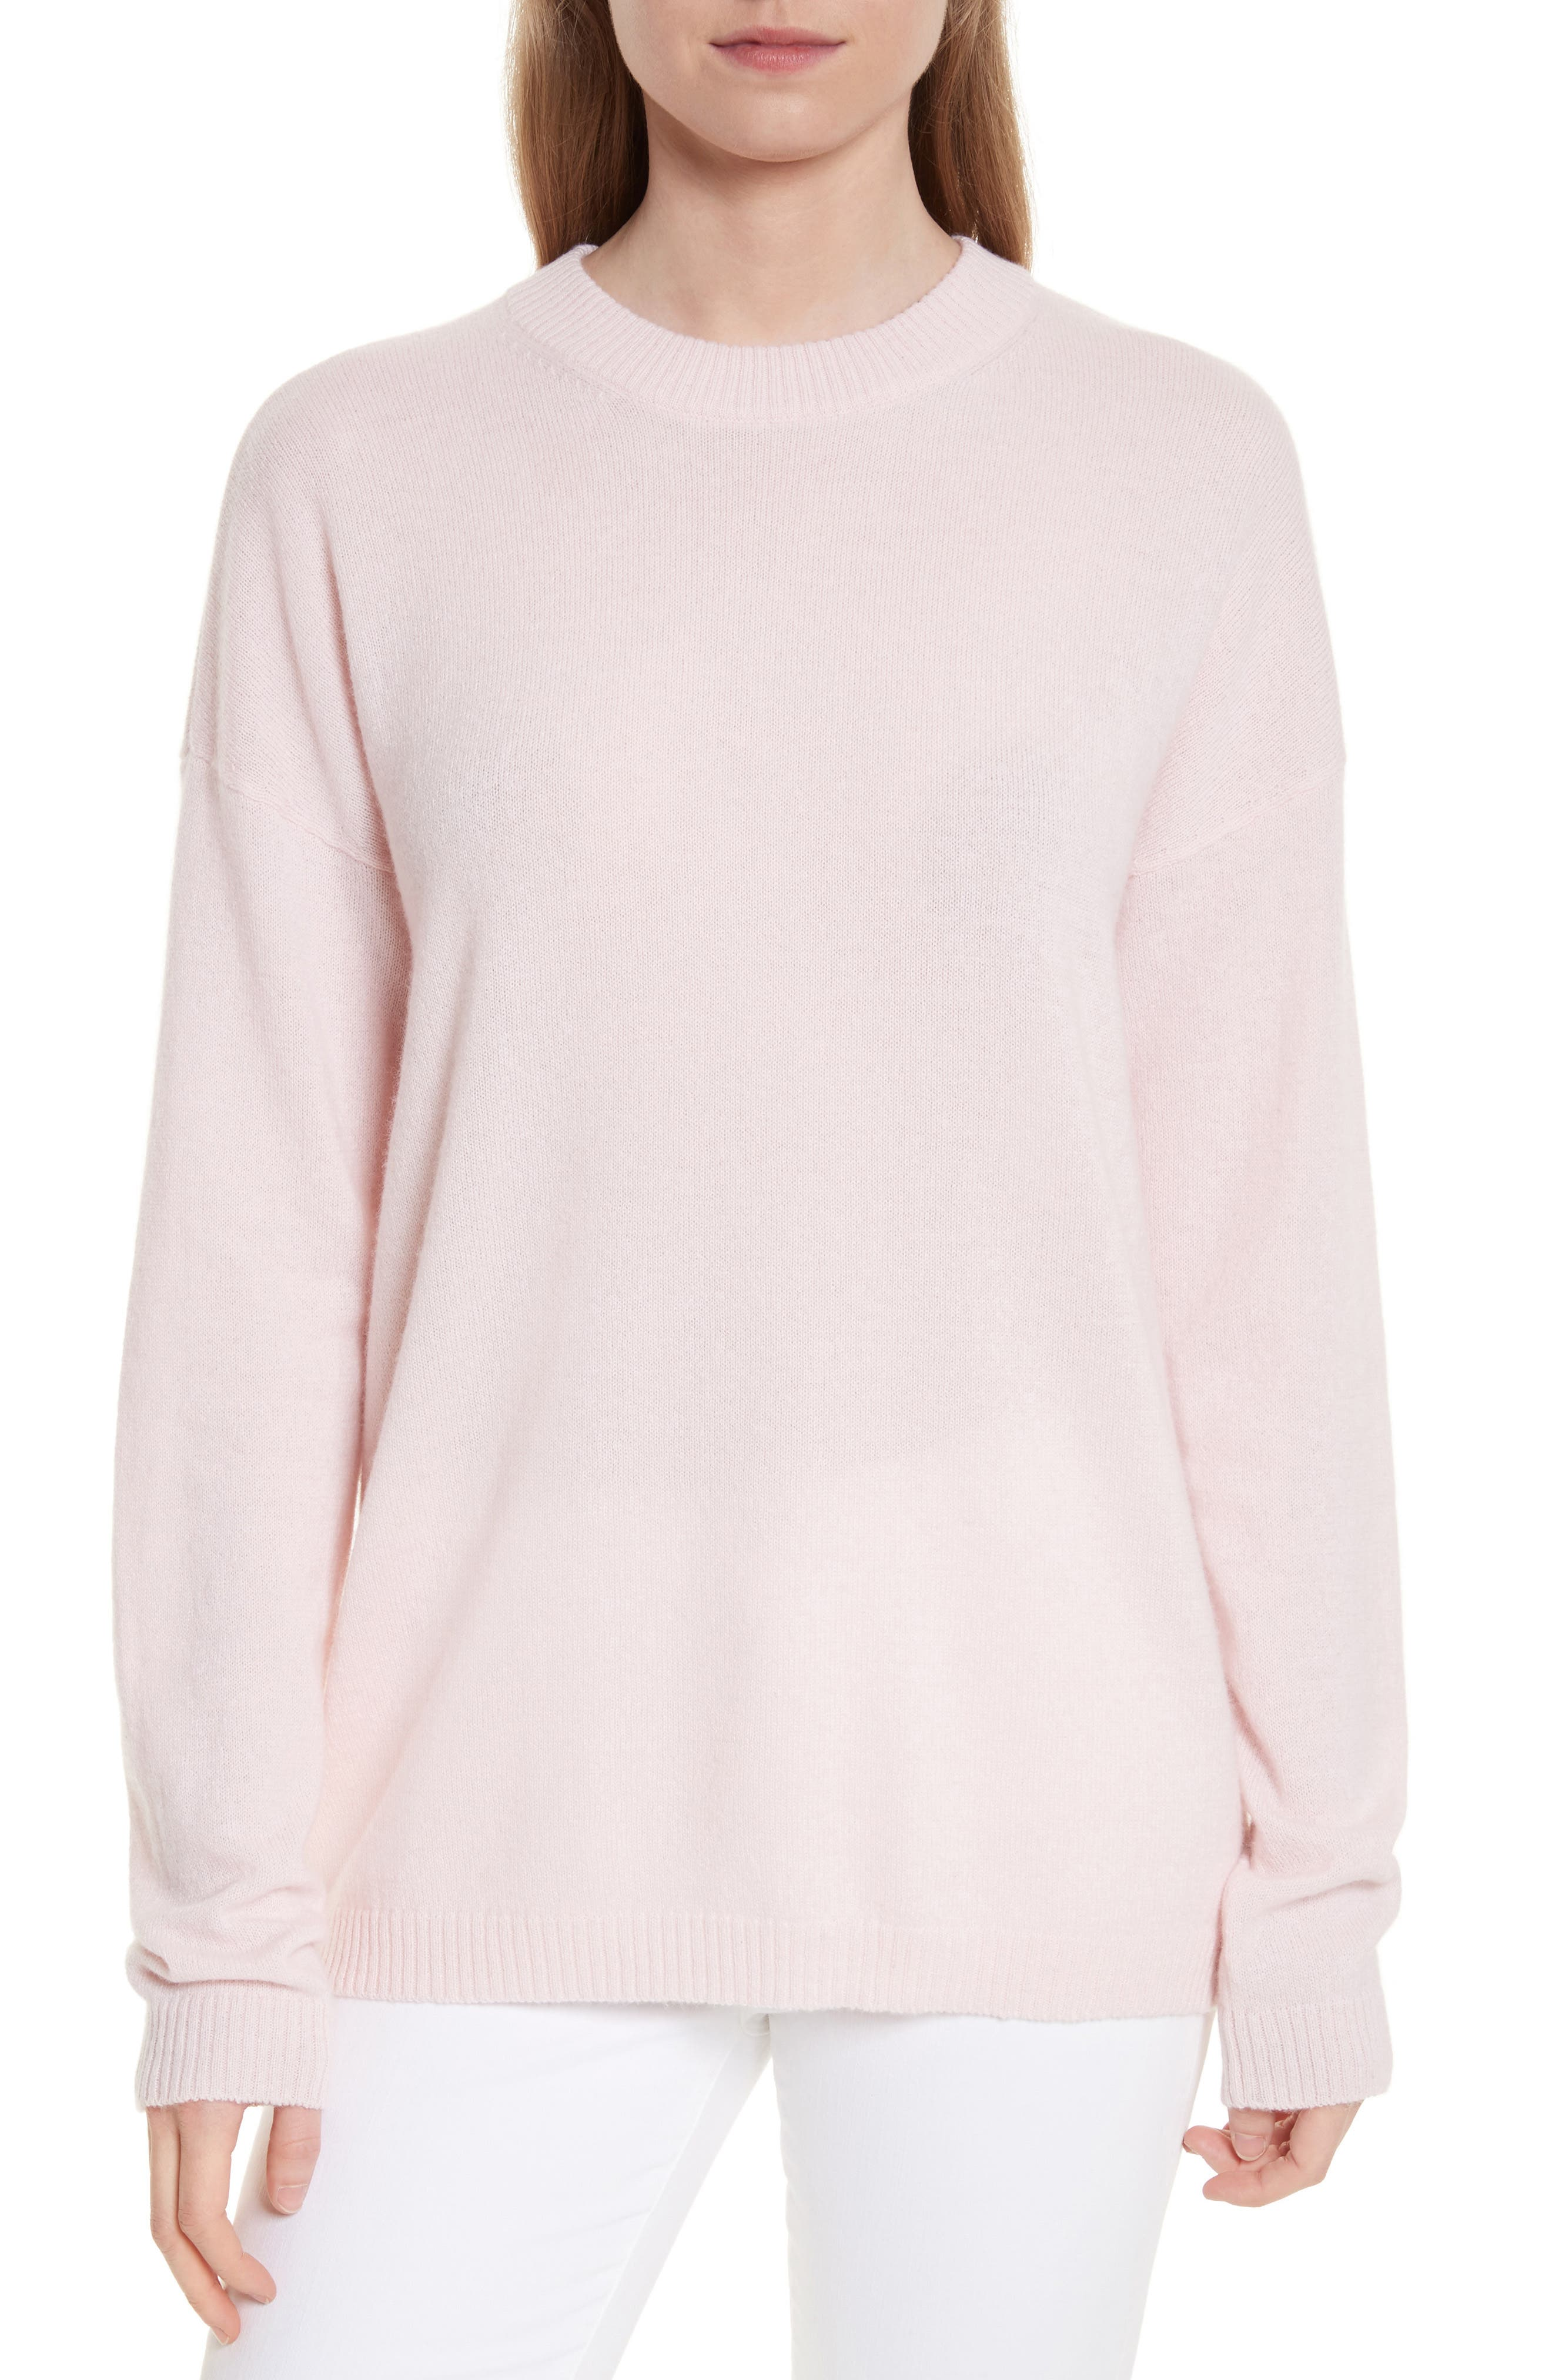 Bryce Oversize Cashmere Sweater,                             Main thumbnail 1, color,                             650